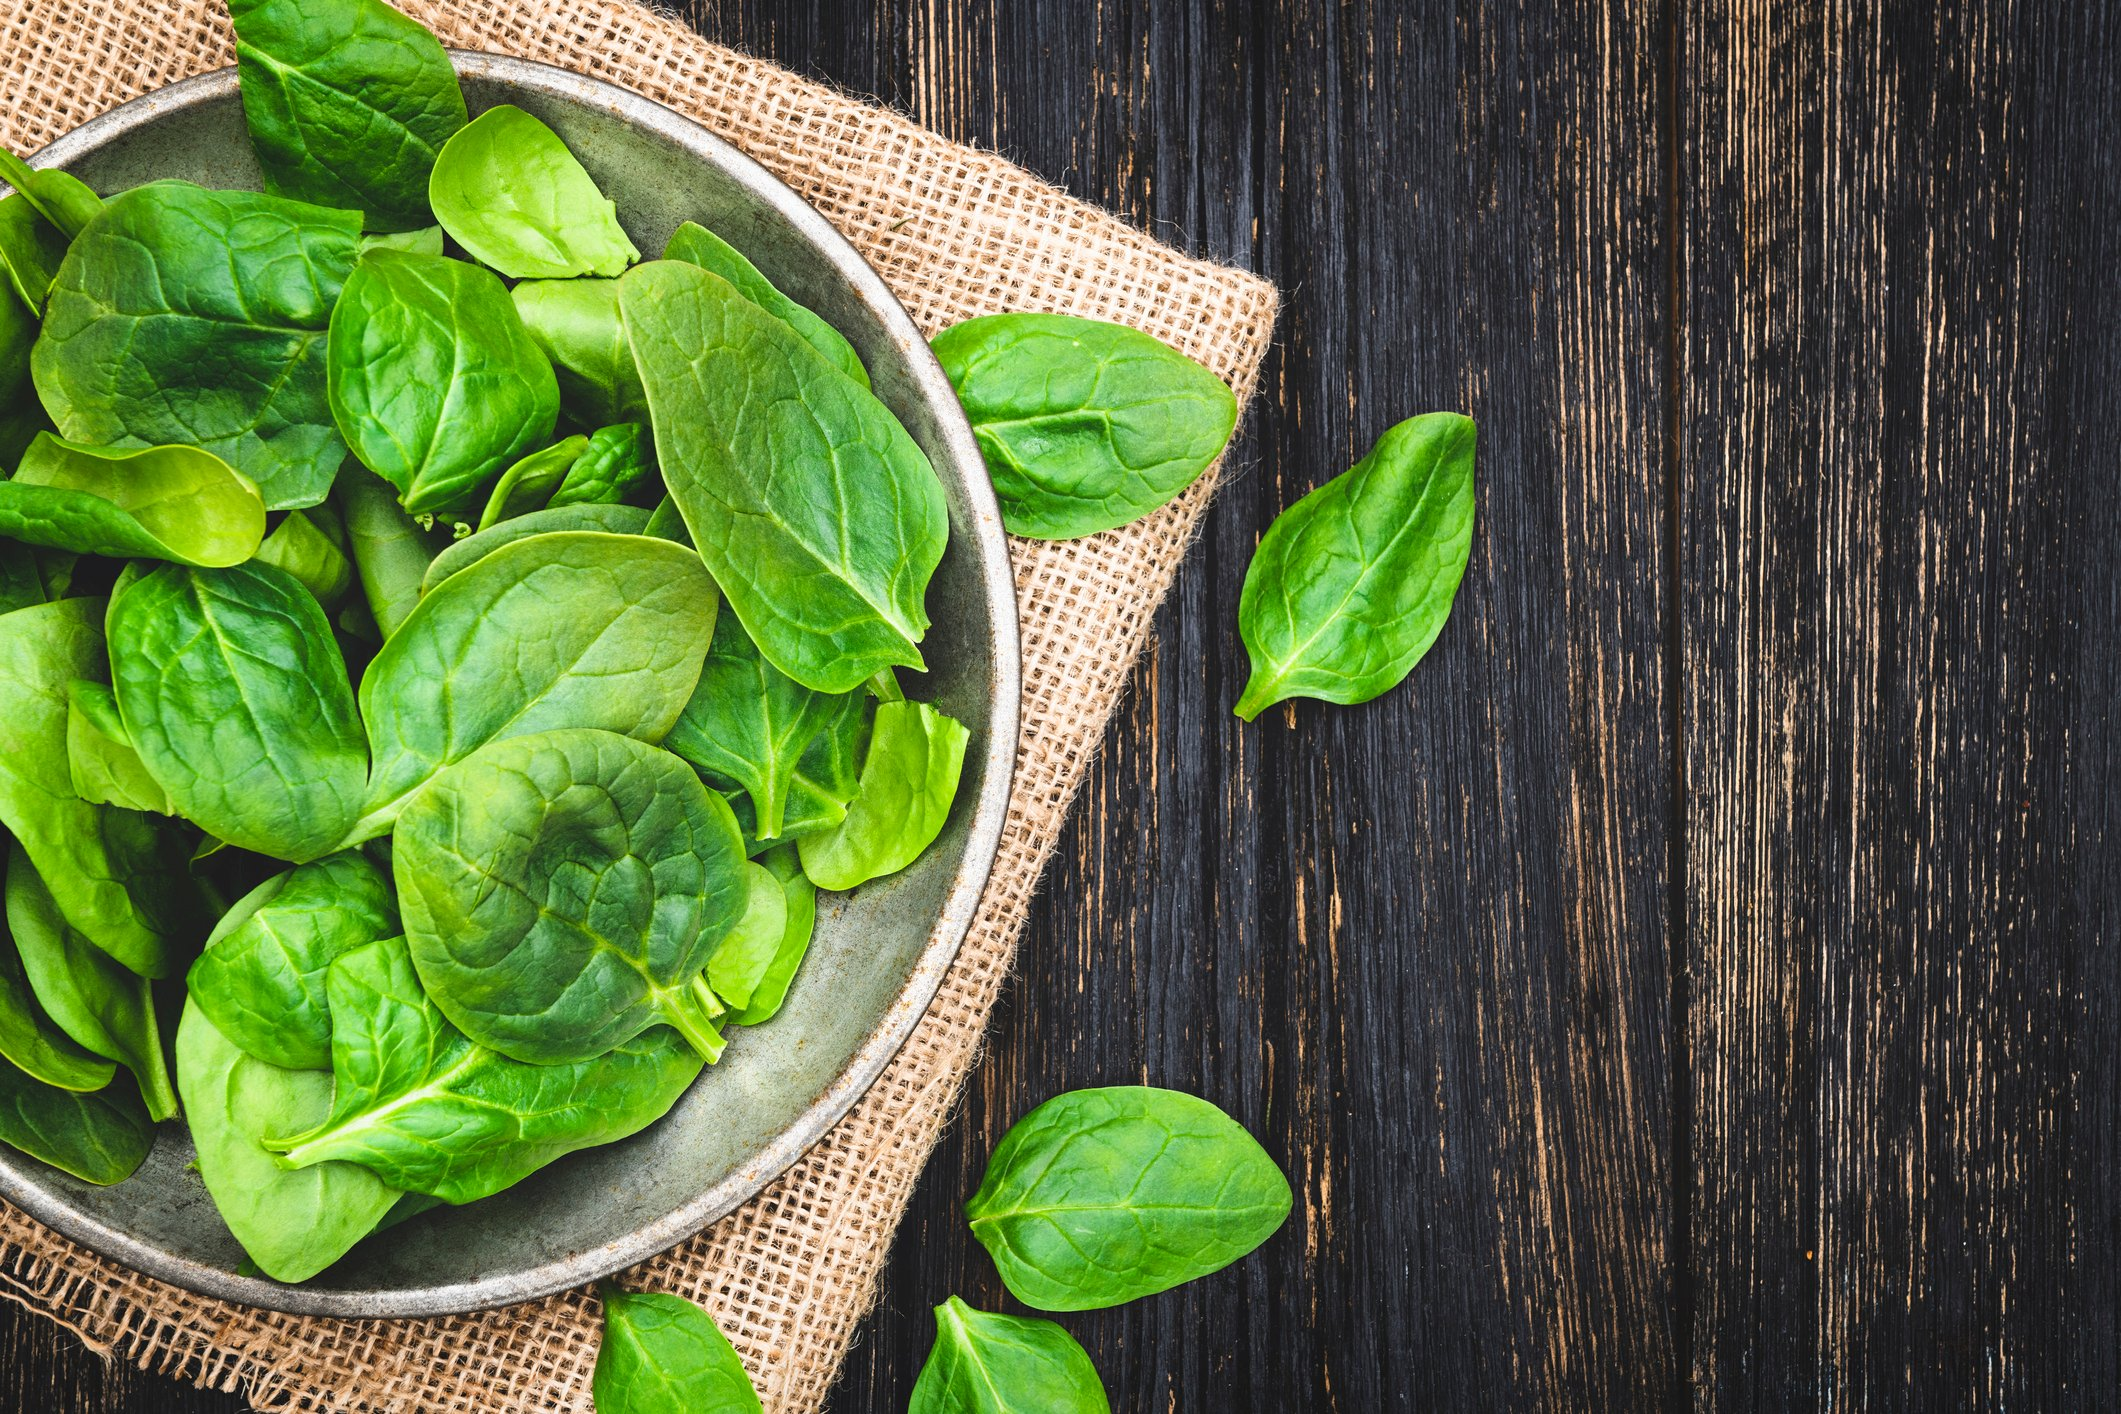 Spinach is great source of iron, folate and magnesium. (iStock Photo)